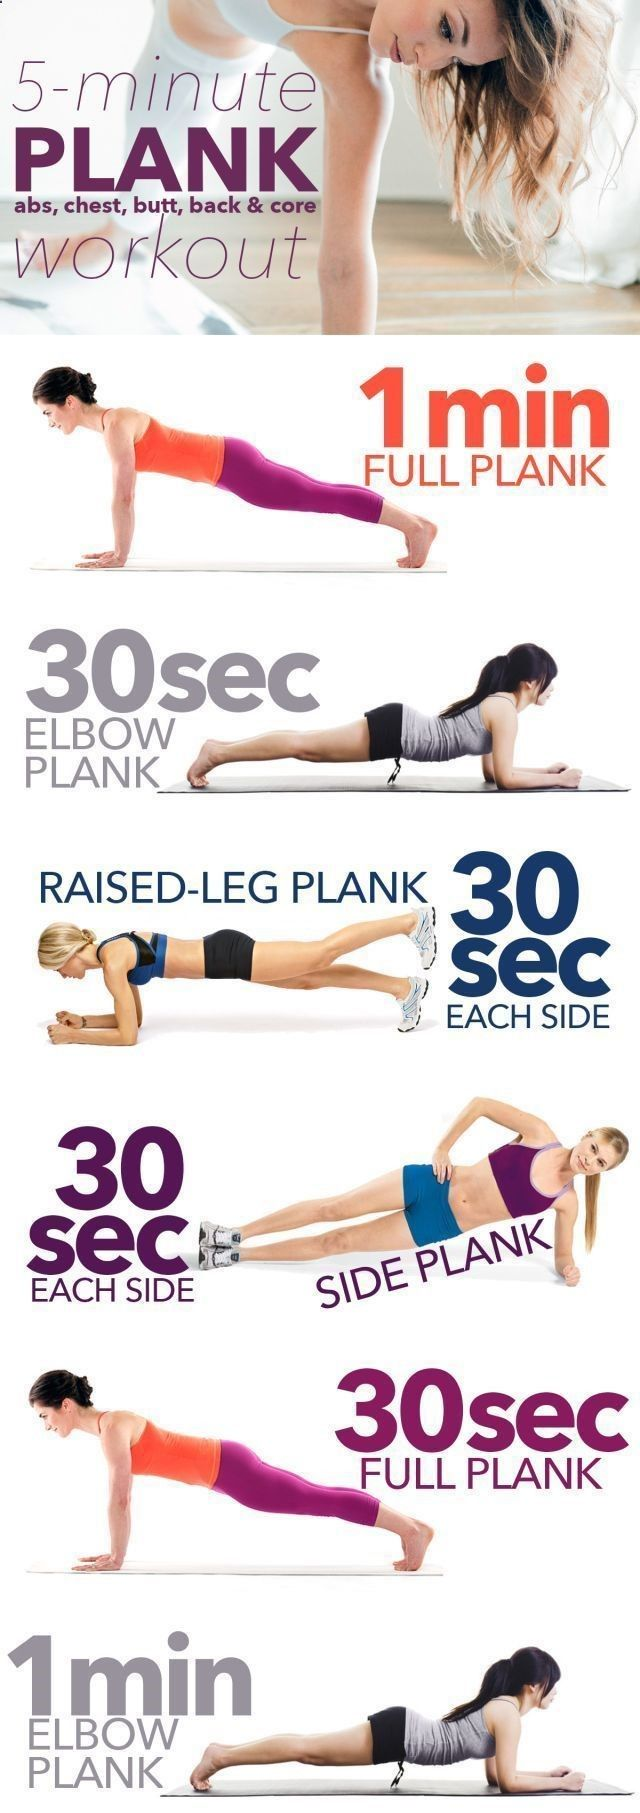 Yoga Workout 9 Amazing Flat Belly Workouts To Help Sculpt Your Abs Get Your Sexiest Body Ever Without Crunches Cardio Or Ever Plank Workout Workout Exercise